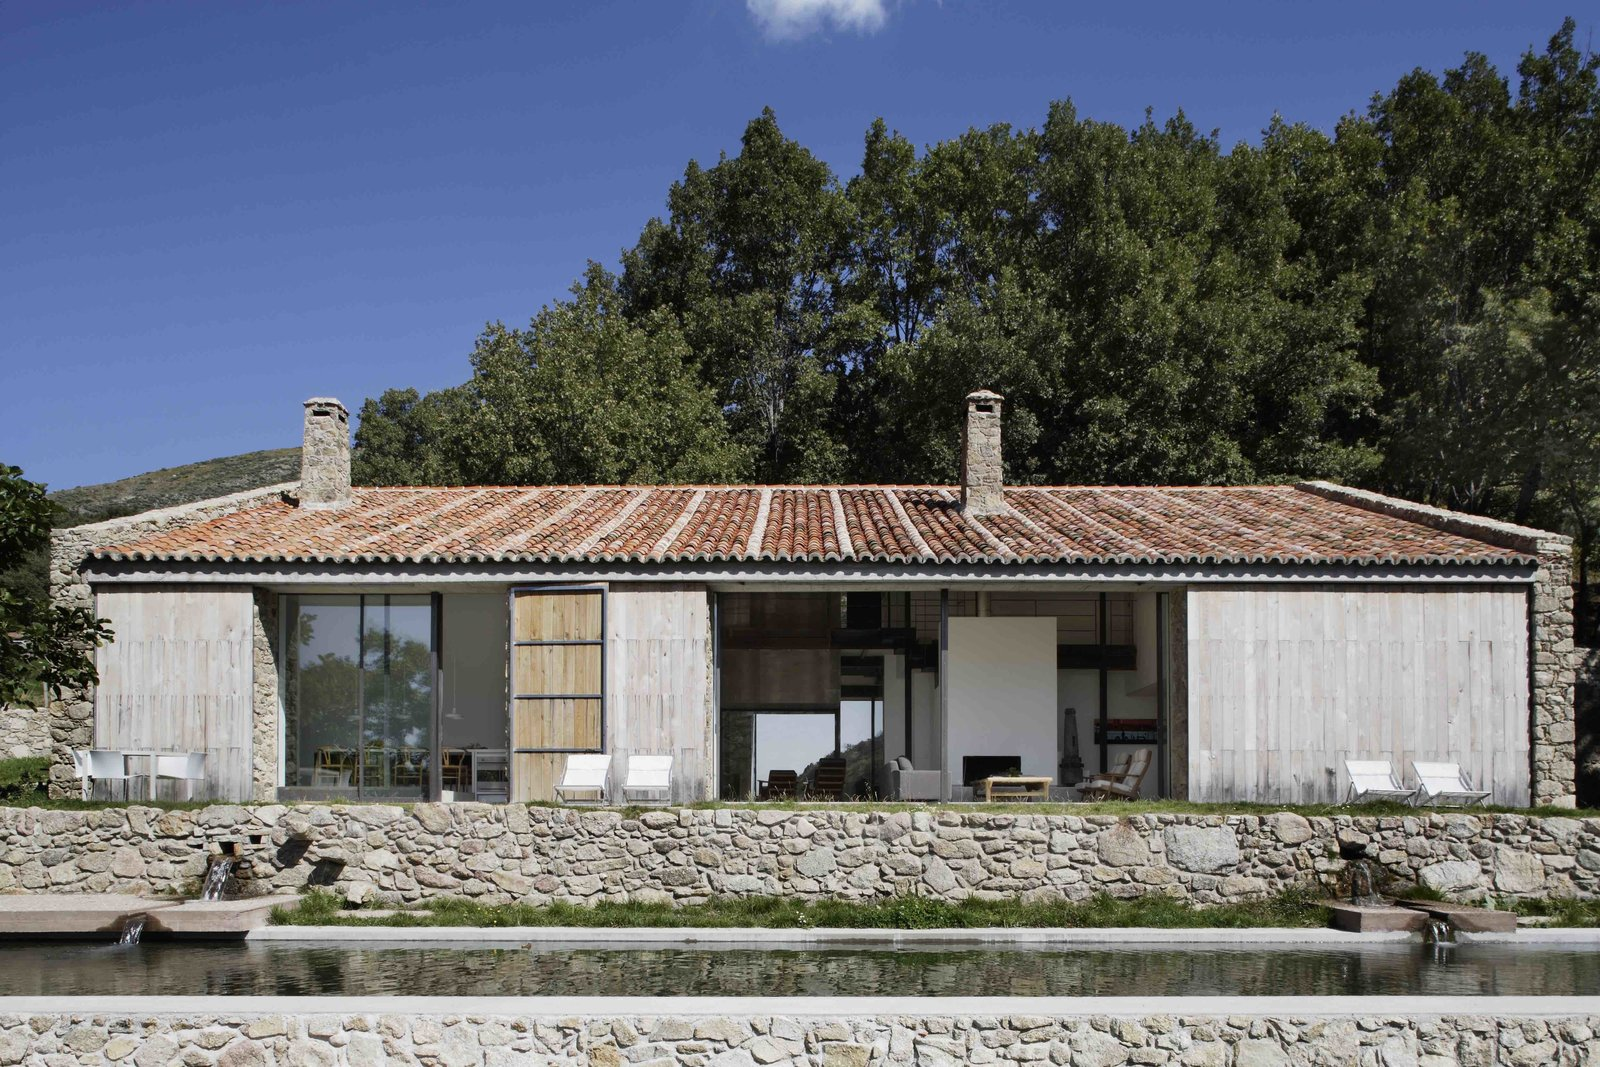 Exterior, Barn Building Type, Tile Roof Material, Wood Siding Material, Stone Siding Material, House Building Type, and Farmhouse Building Type  Photo 2 of 14 in An Abandoned Stable in Spain Is Transformed Into a Sustainable Vacation Home For Rent